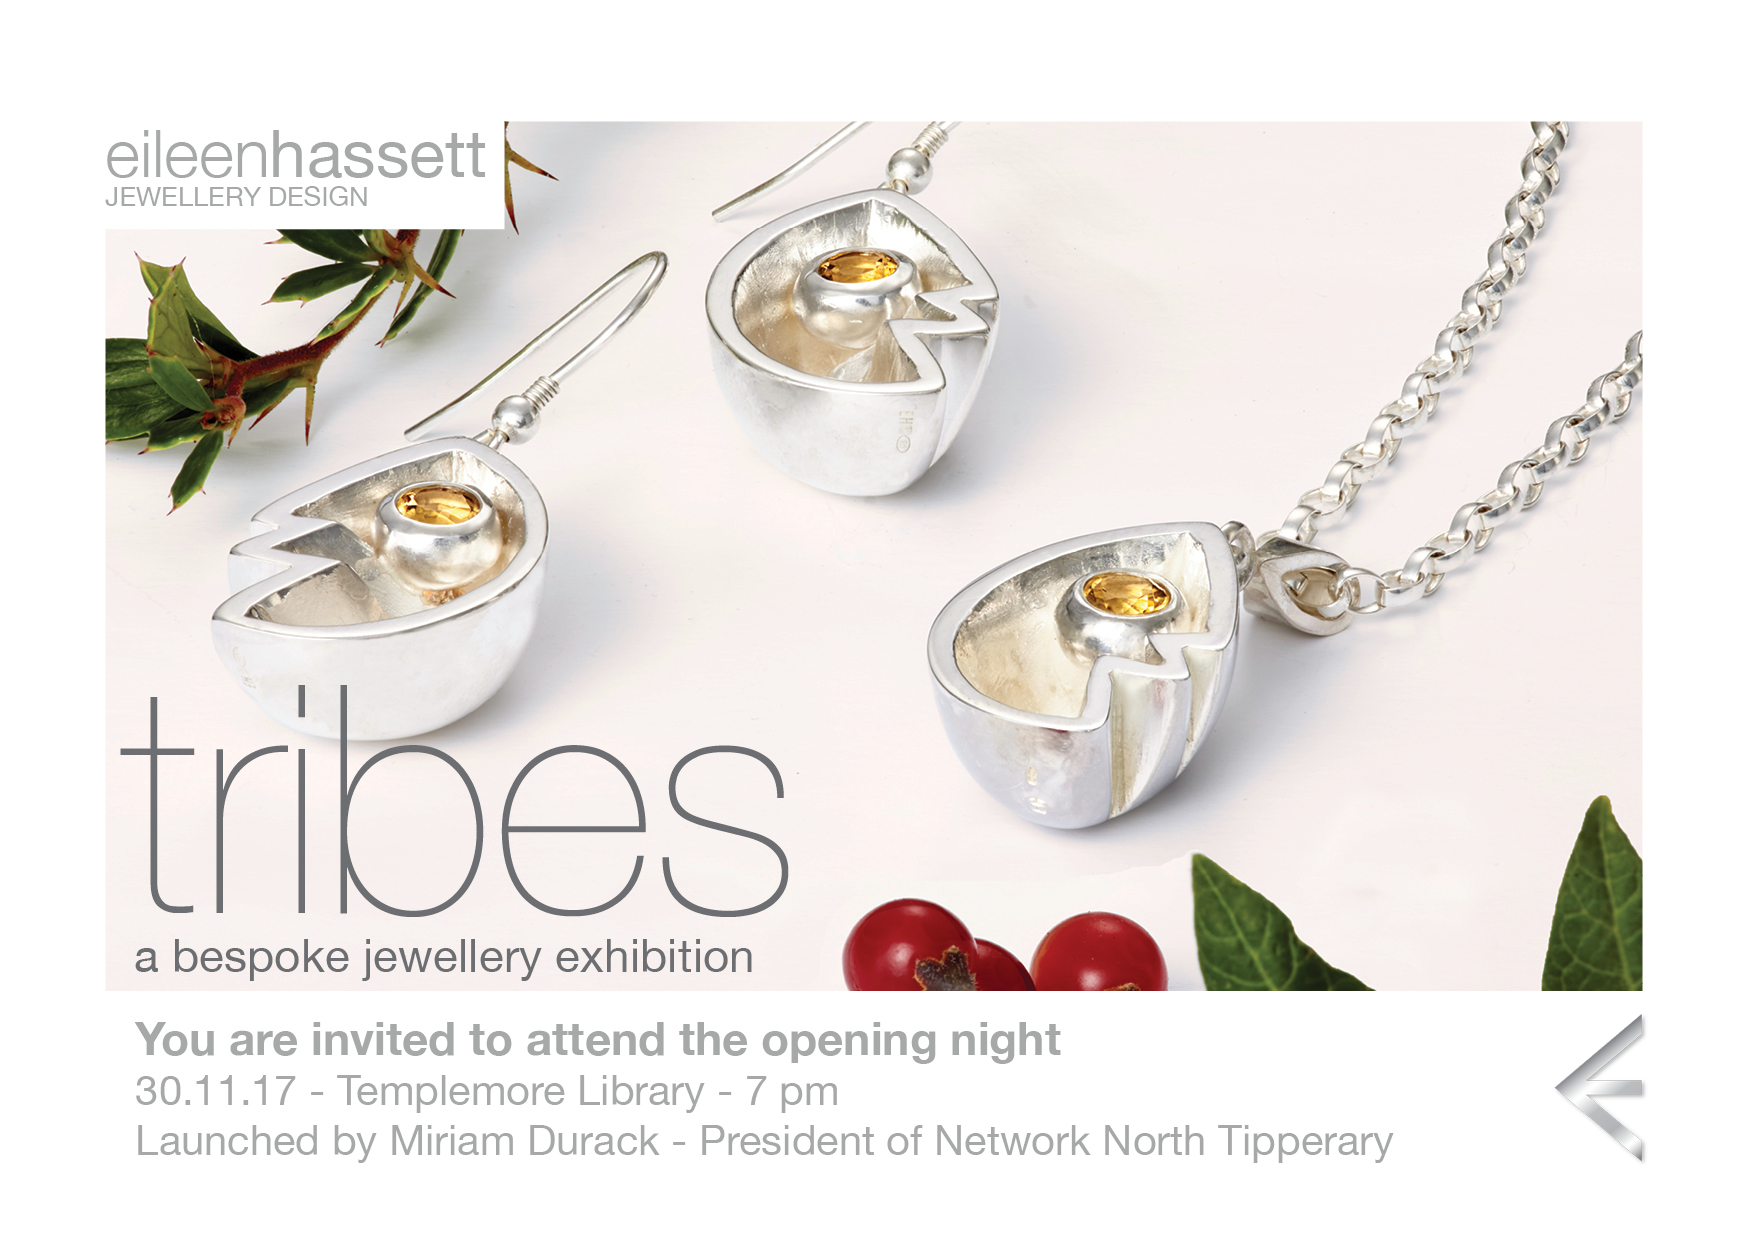 A Bespoke Jewellery Exhibition by Eileen Hassett opening night – Templemore Library – 30th Nov. @ 7pm